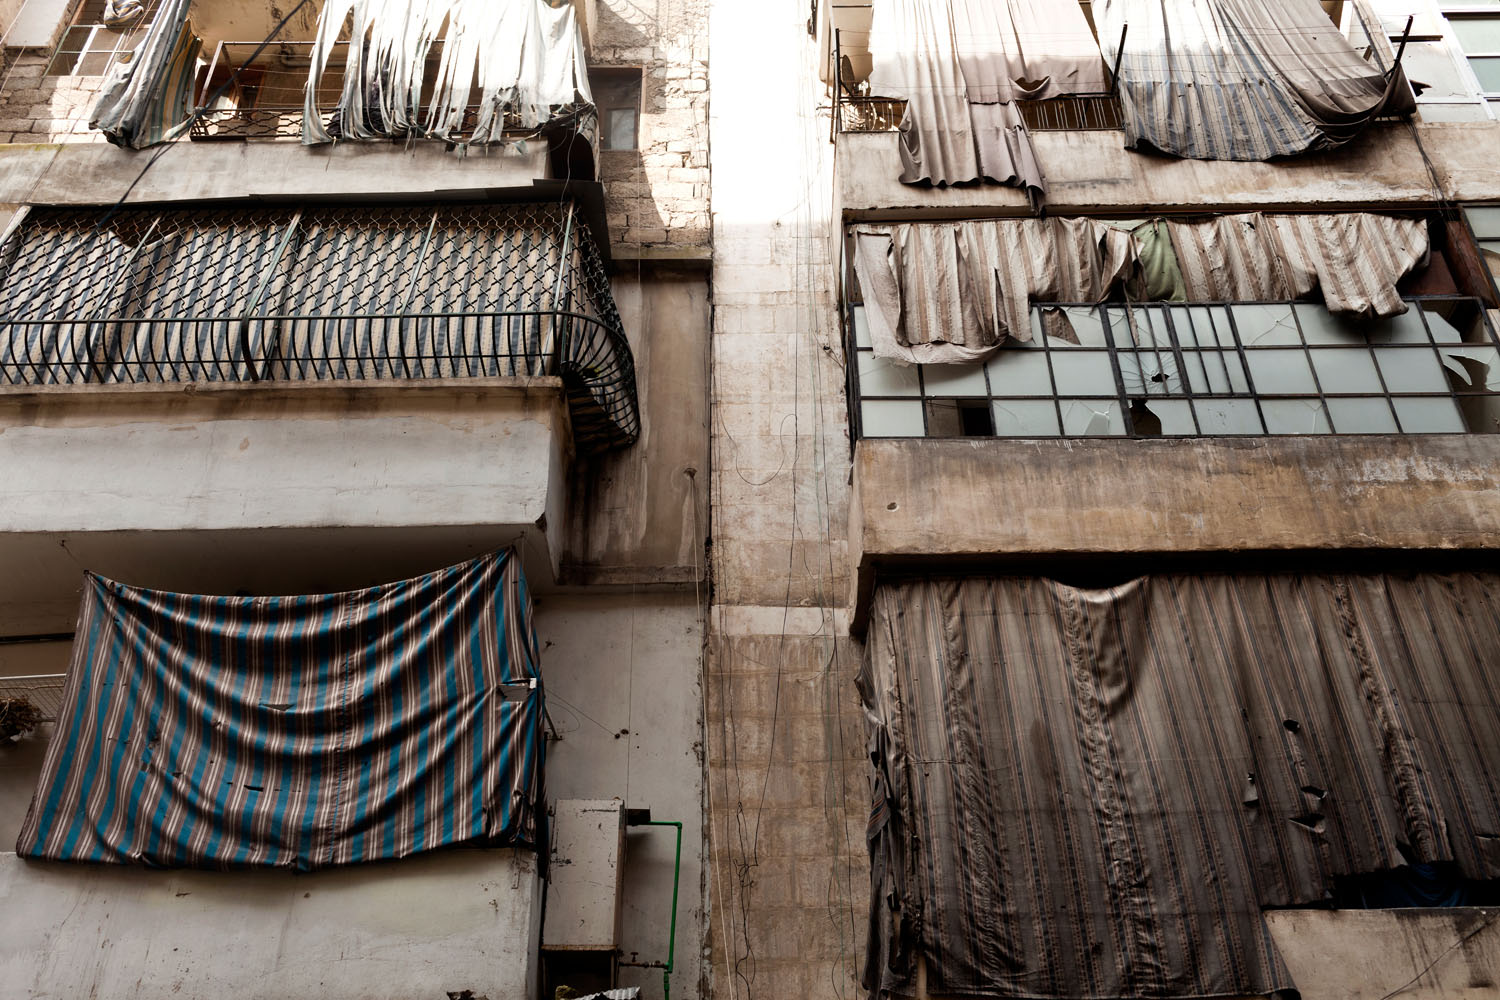 Windows throughout Aleppo are covered in sheets.